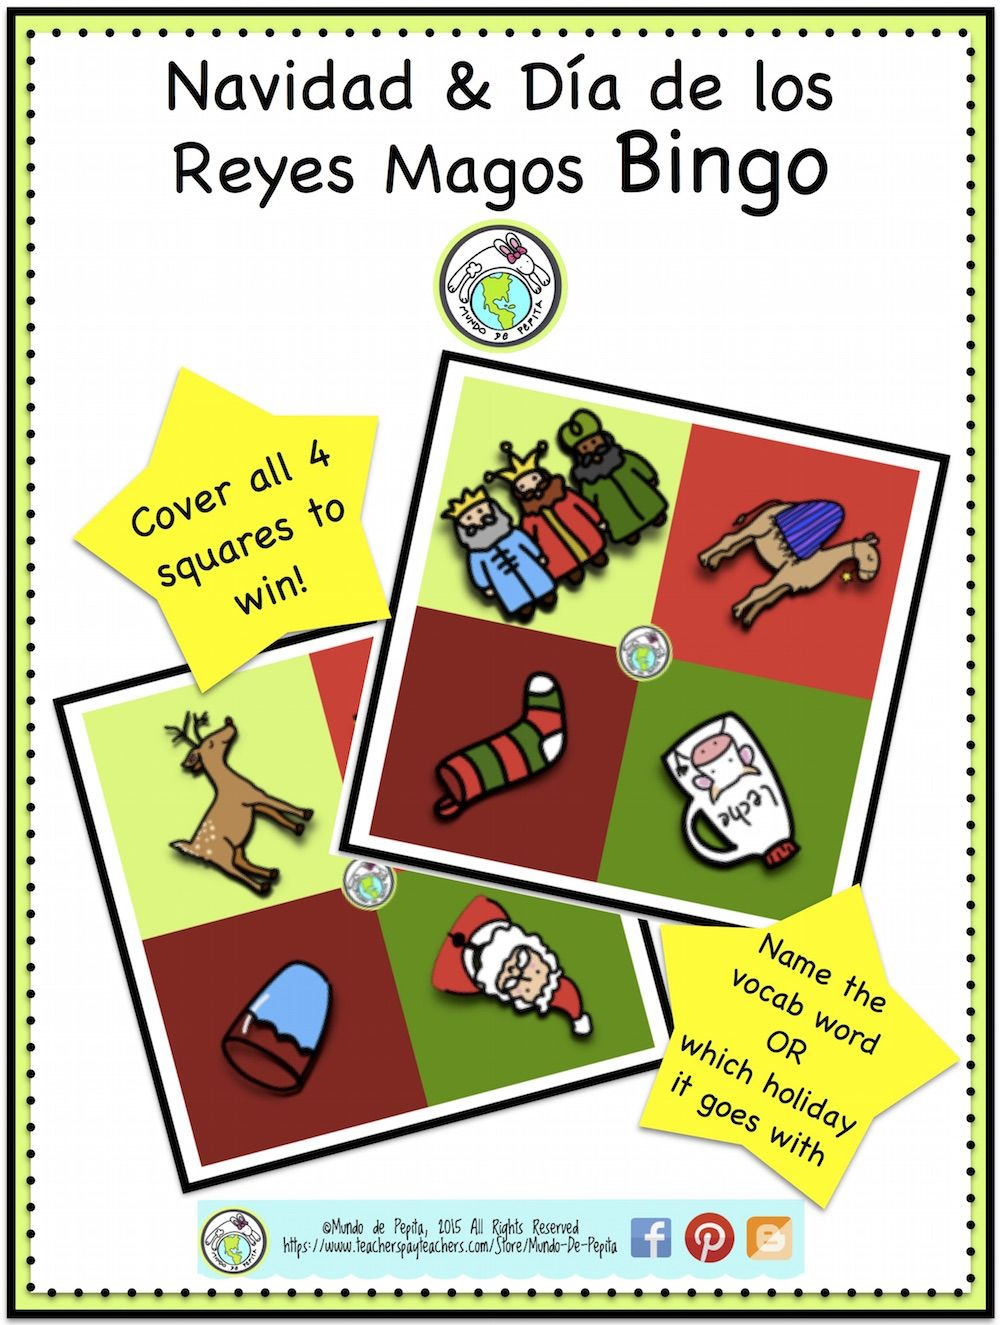 Christmas Three Kings Day Tres Reyes Magos Mini Bingo Cards ...